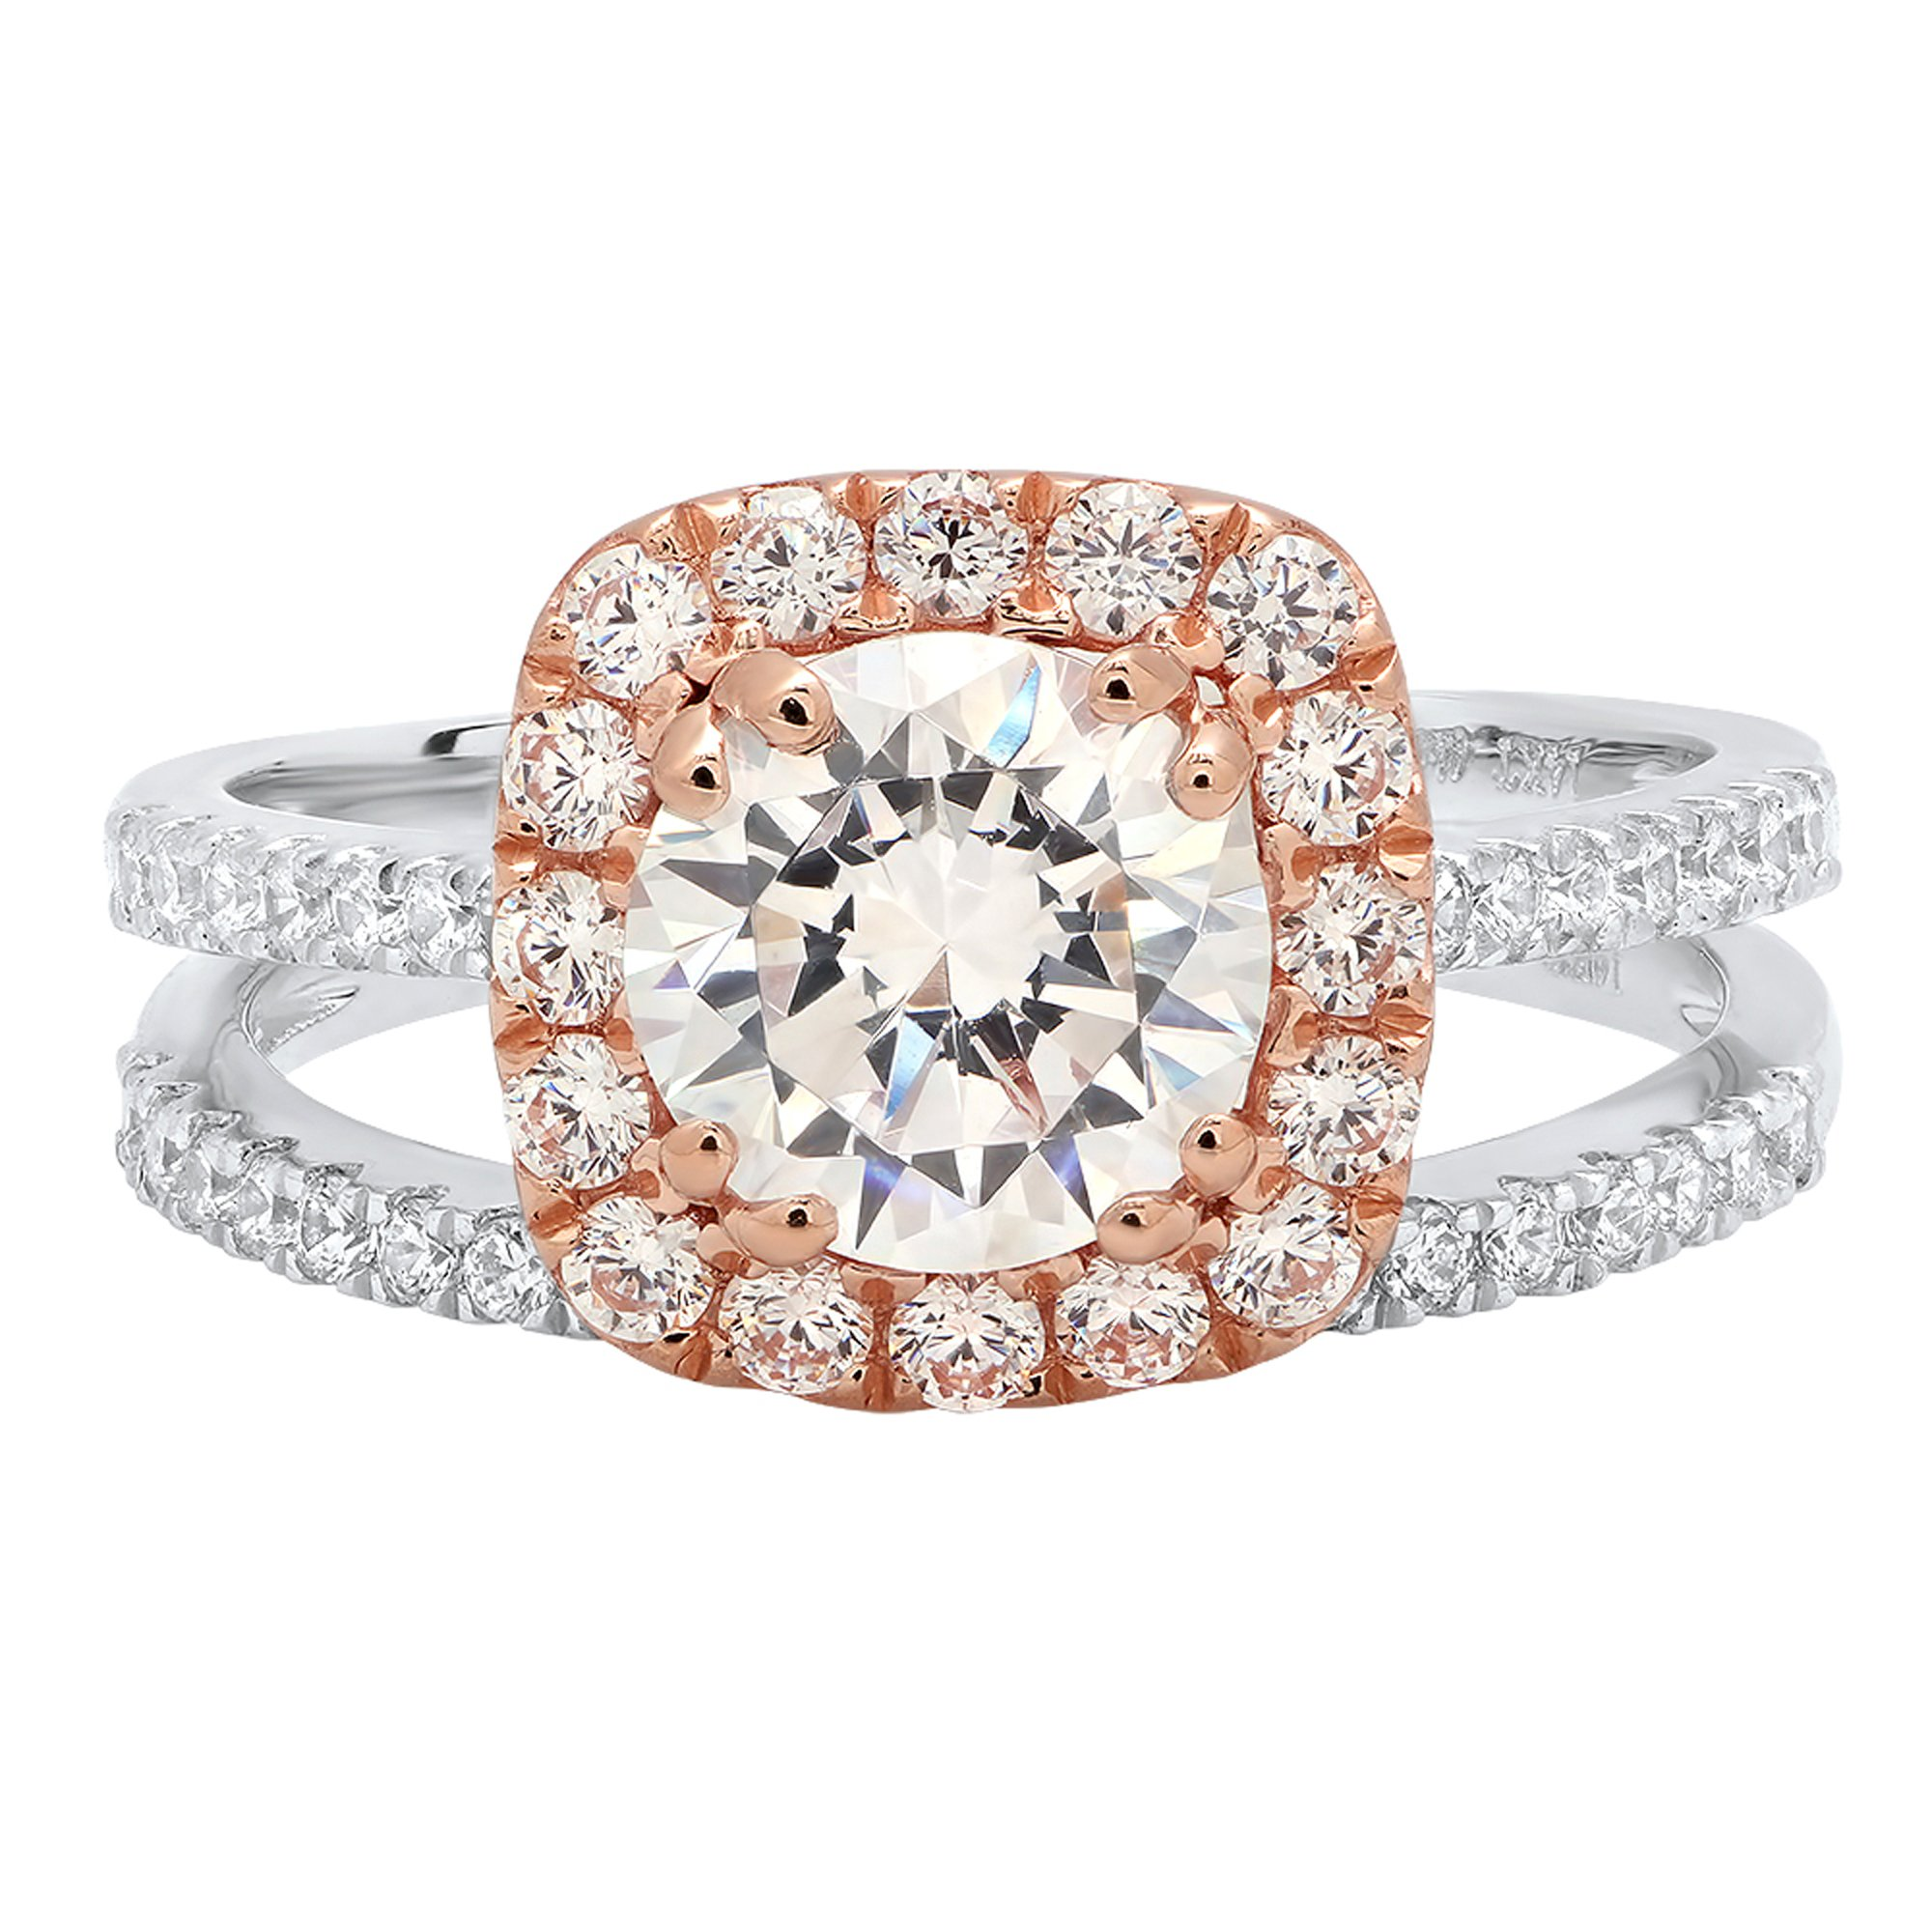 2.35 CT Round Brilliant Cut Simulated Diamond CZ Designer Solitaire Pave Halo Ring band set Solid 14k White and Rose Multi Tone Gold by Clara Pucci (Image #1)